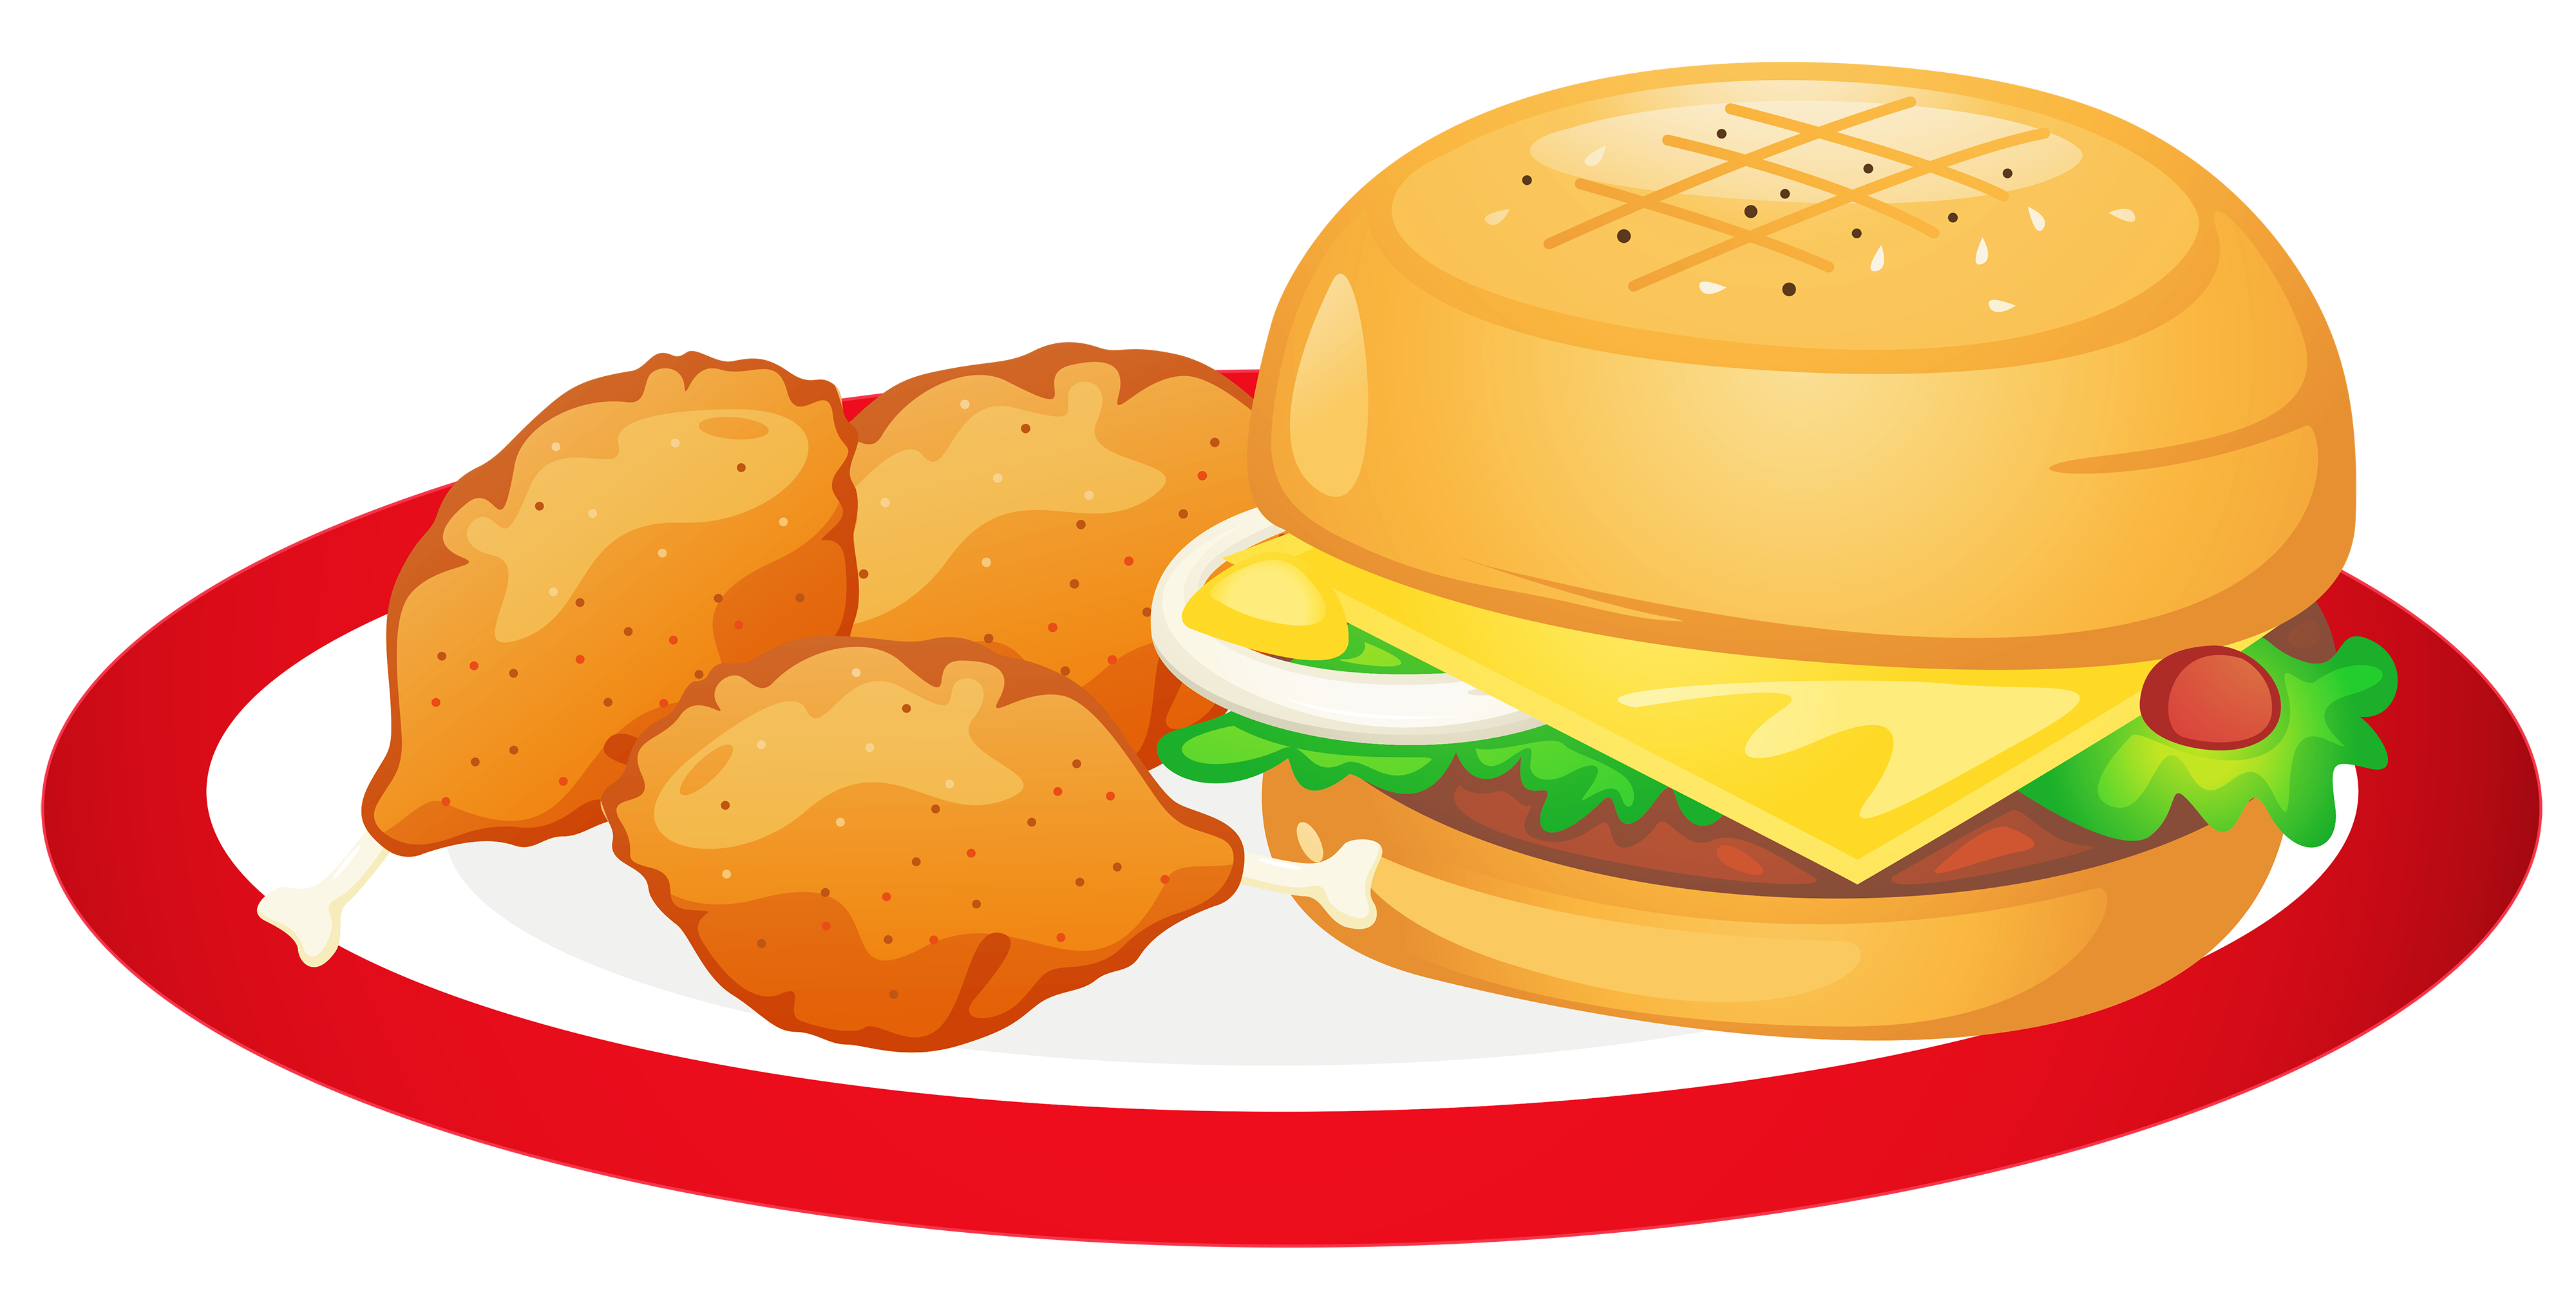 4000x2009 High Resolution Free Food Clipart Collection